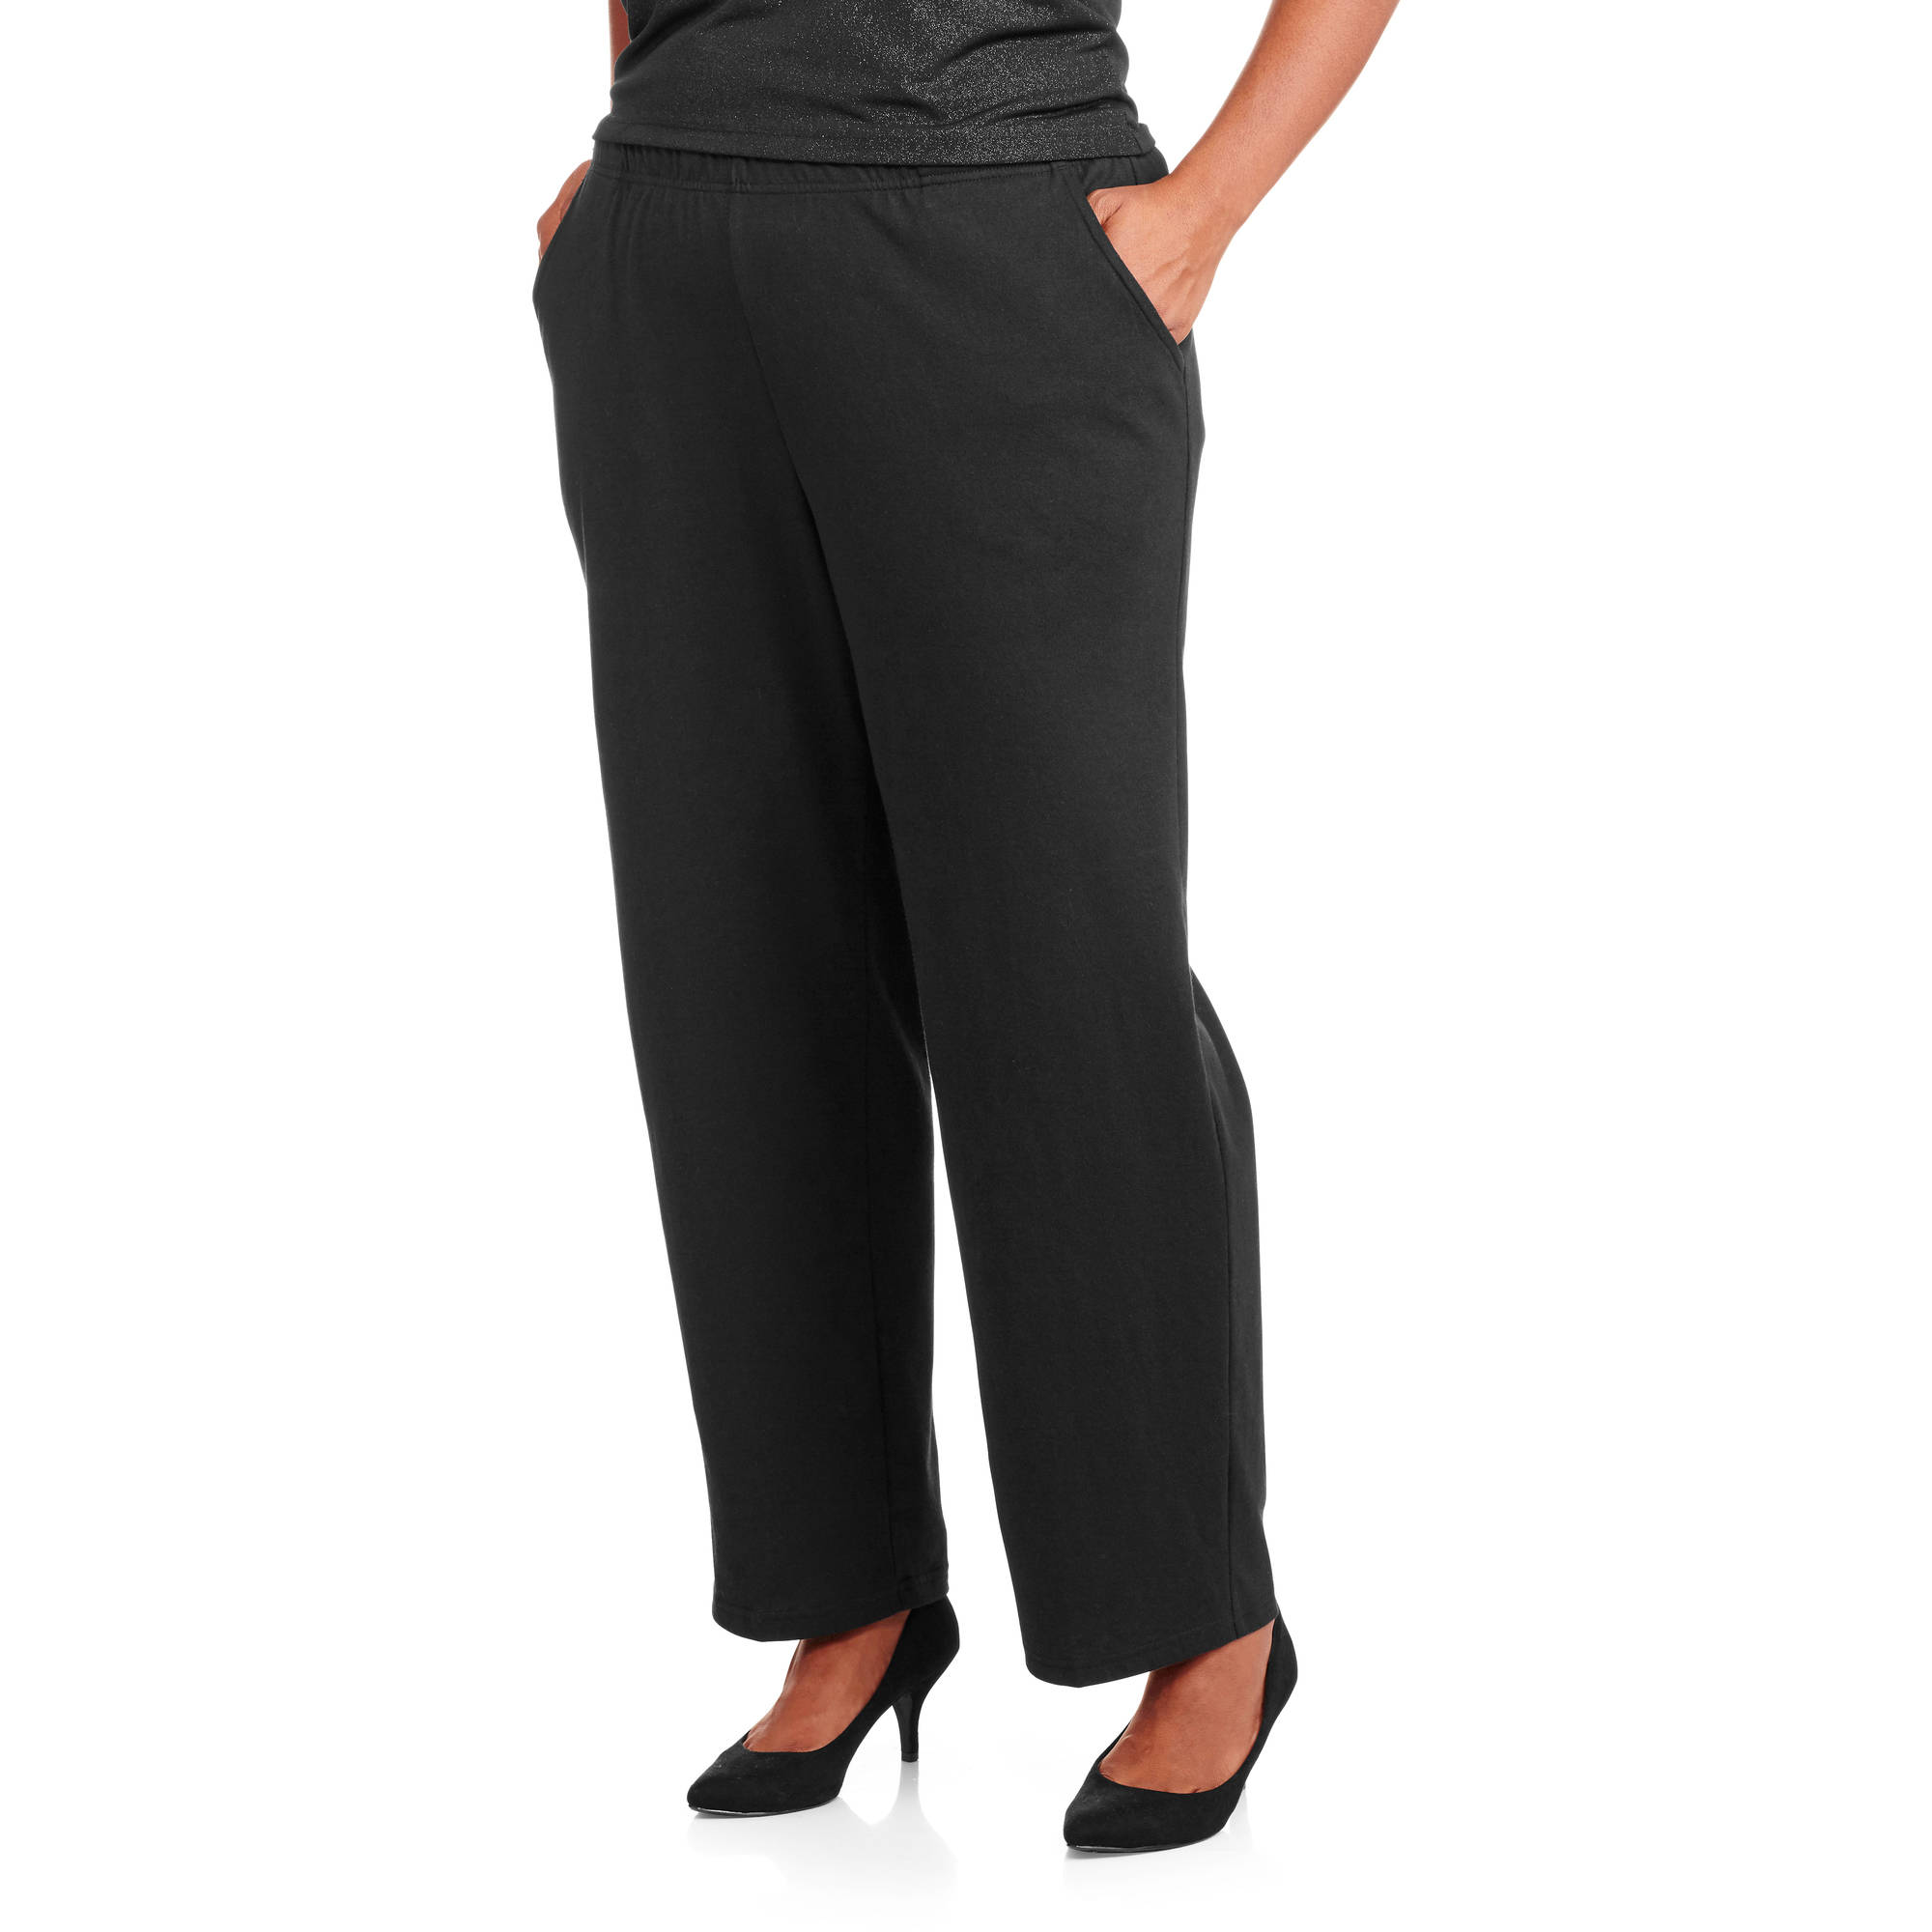 White Stag Women's Plus-Size Essential Pull-On Knit Pants, Available in Regular and Petite Lengths